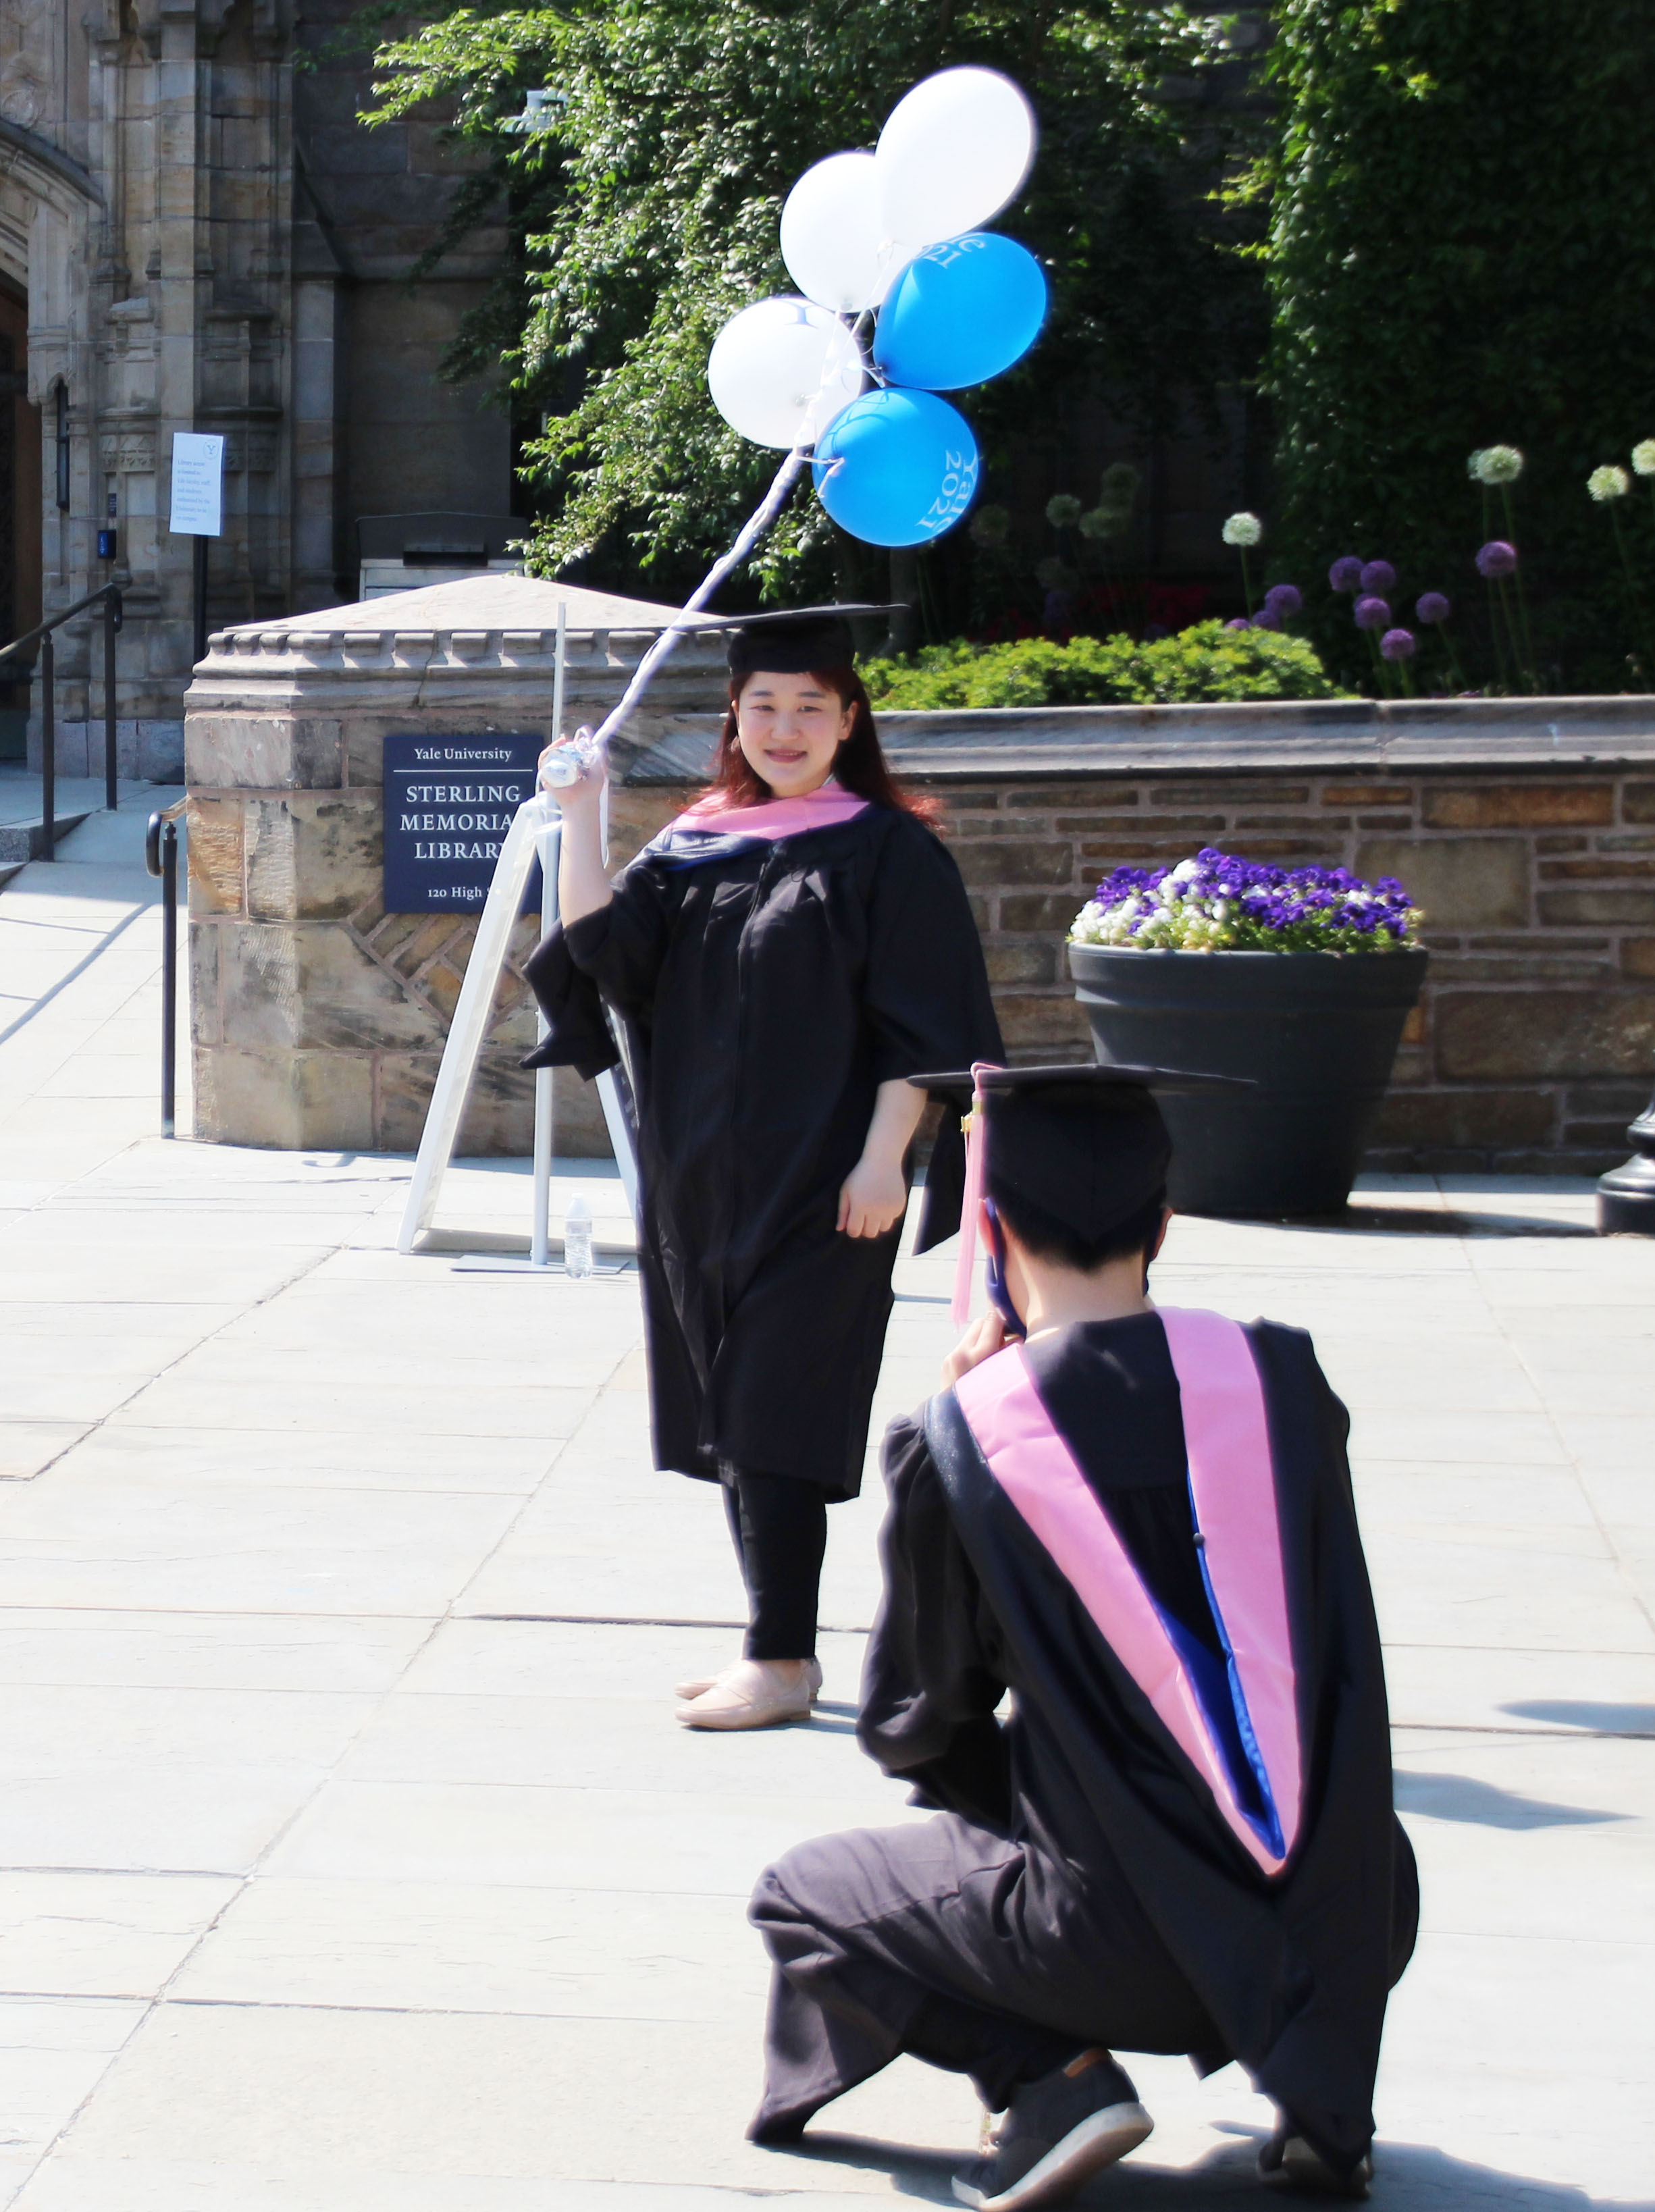 one student taking a photo of another with balloons